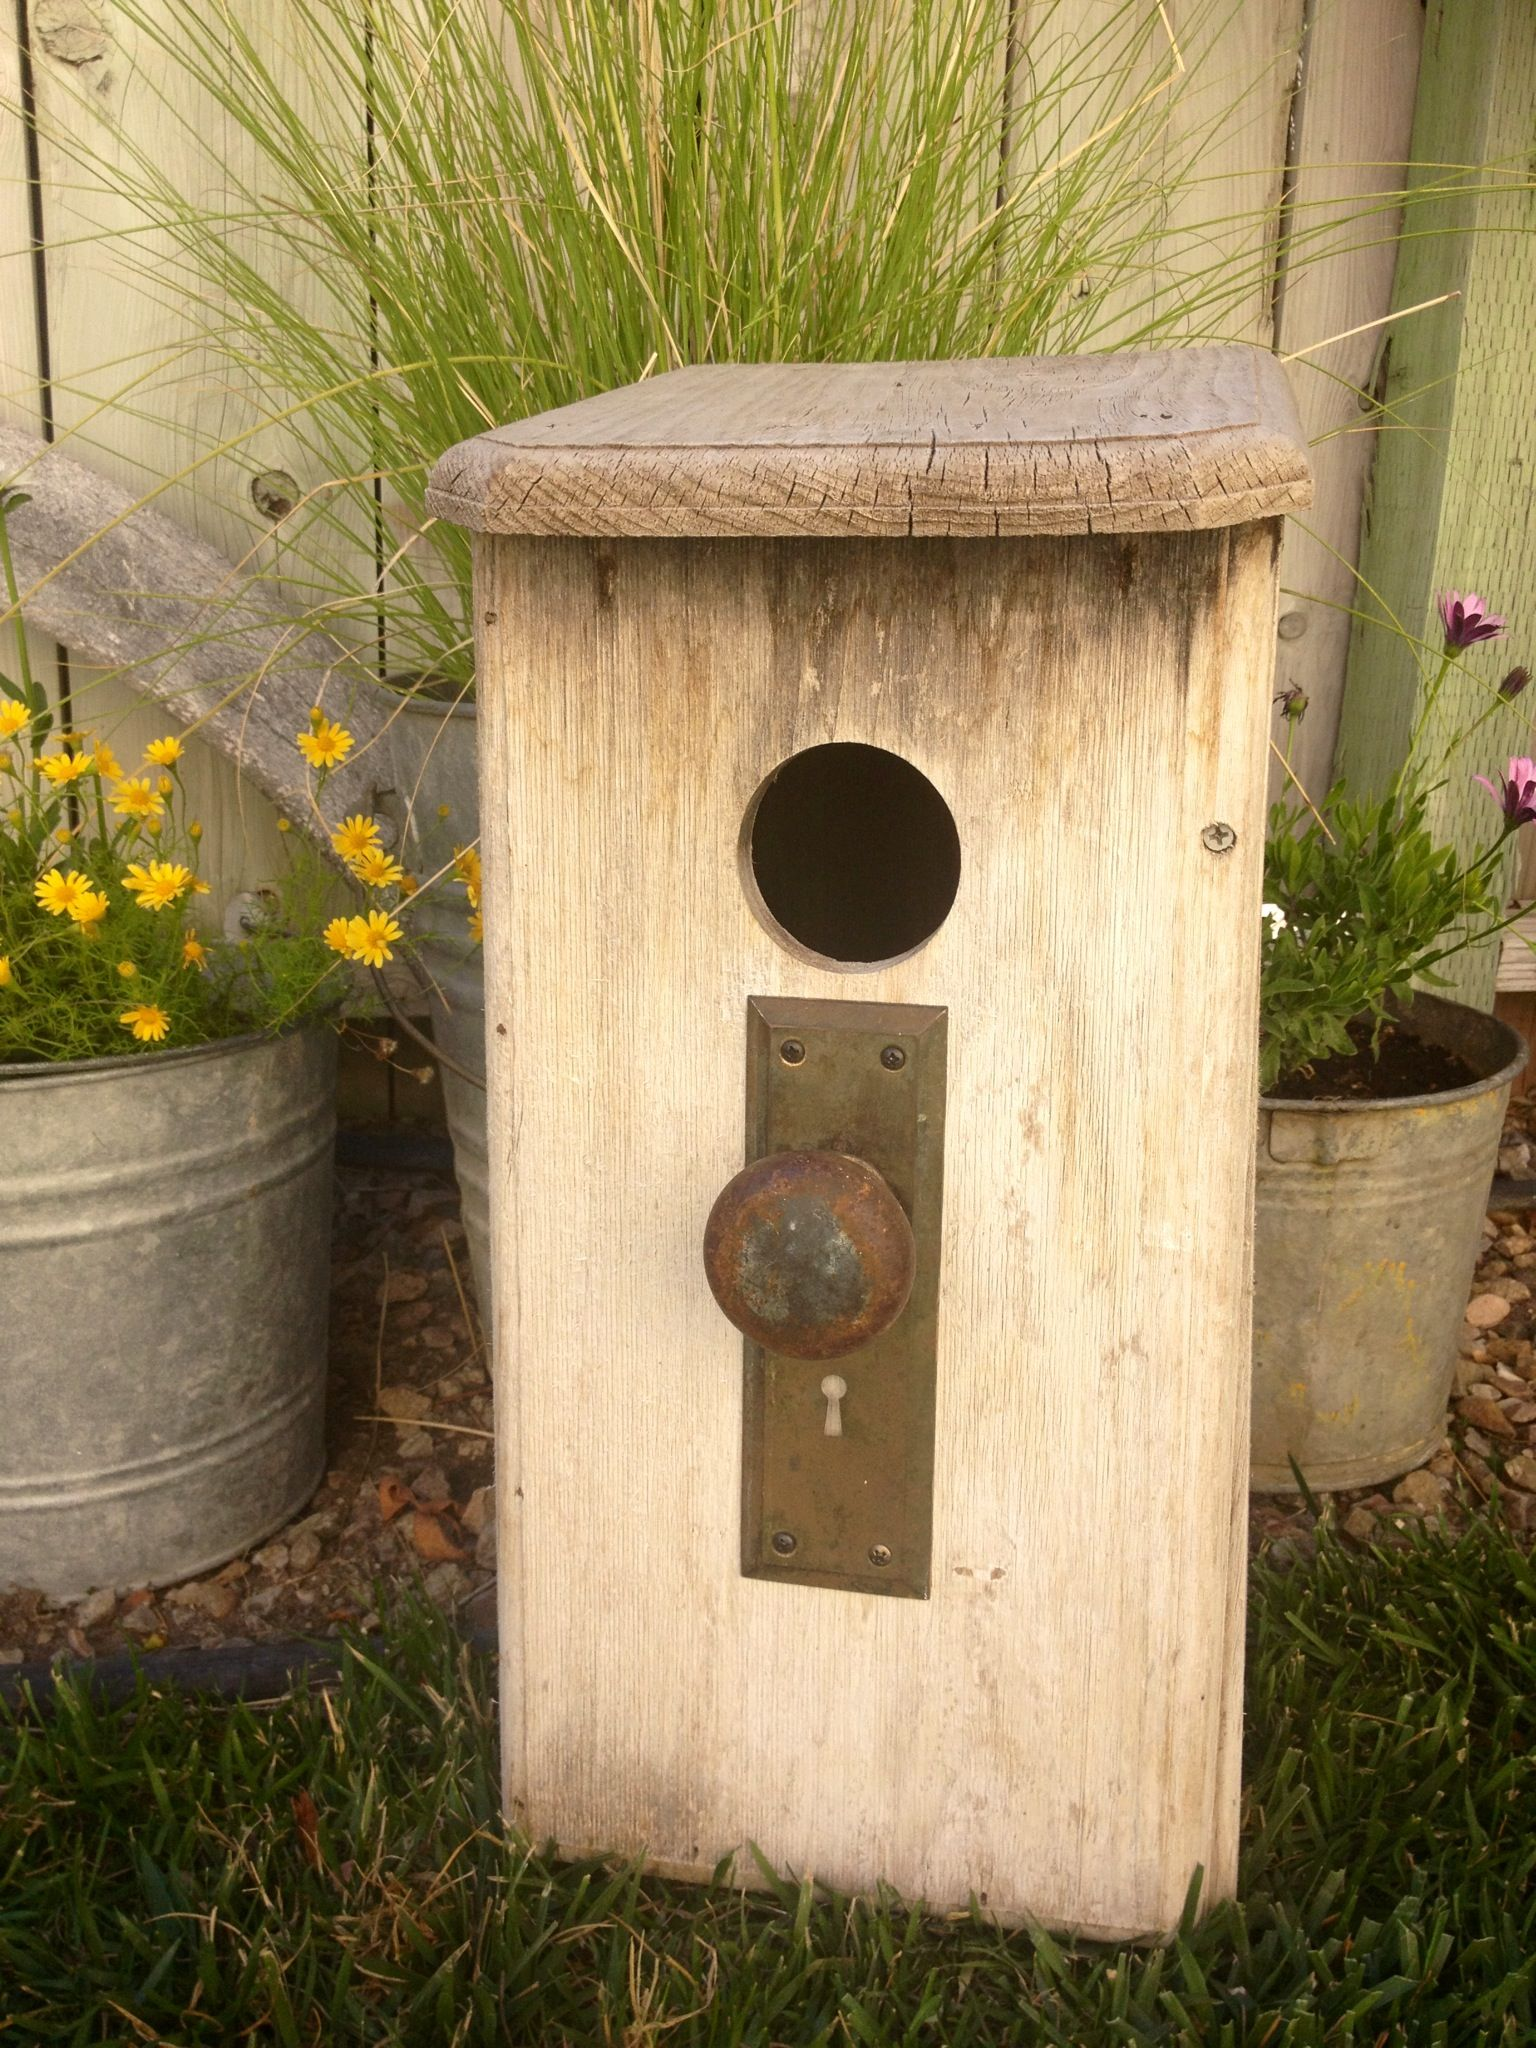 found this cool old birdhouse at a garage sale & added the ...